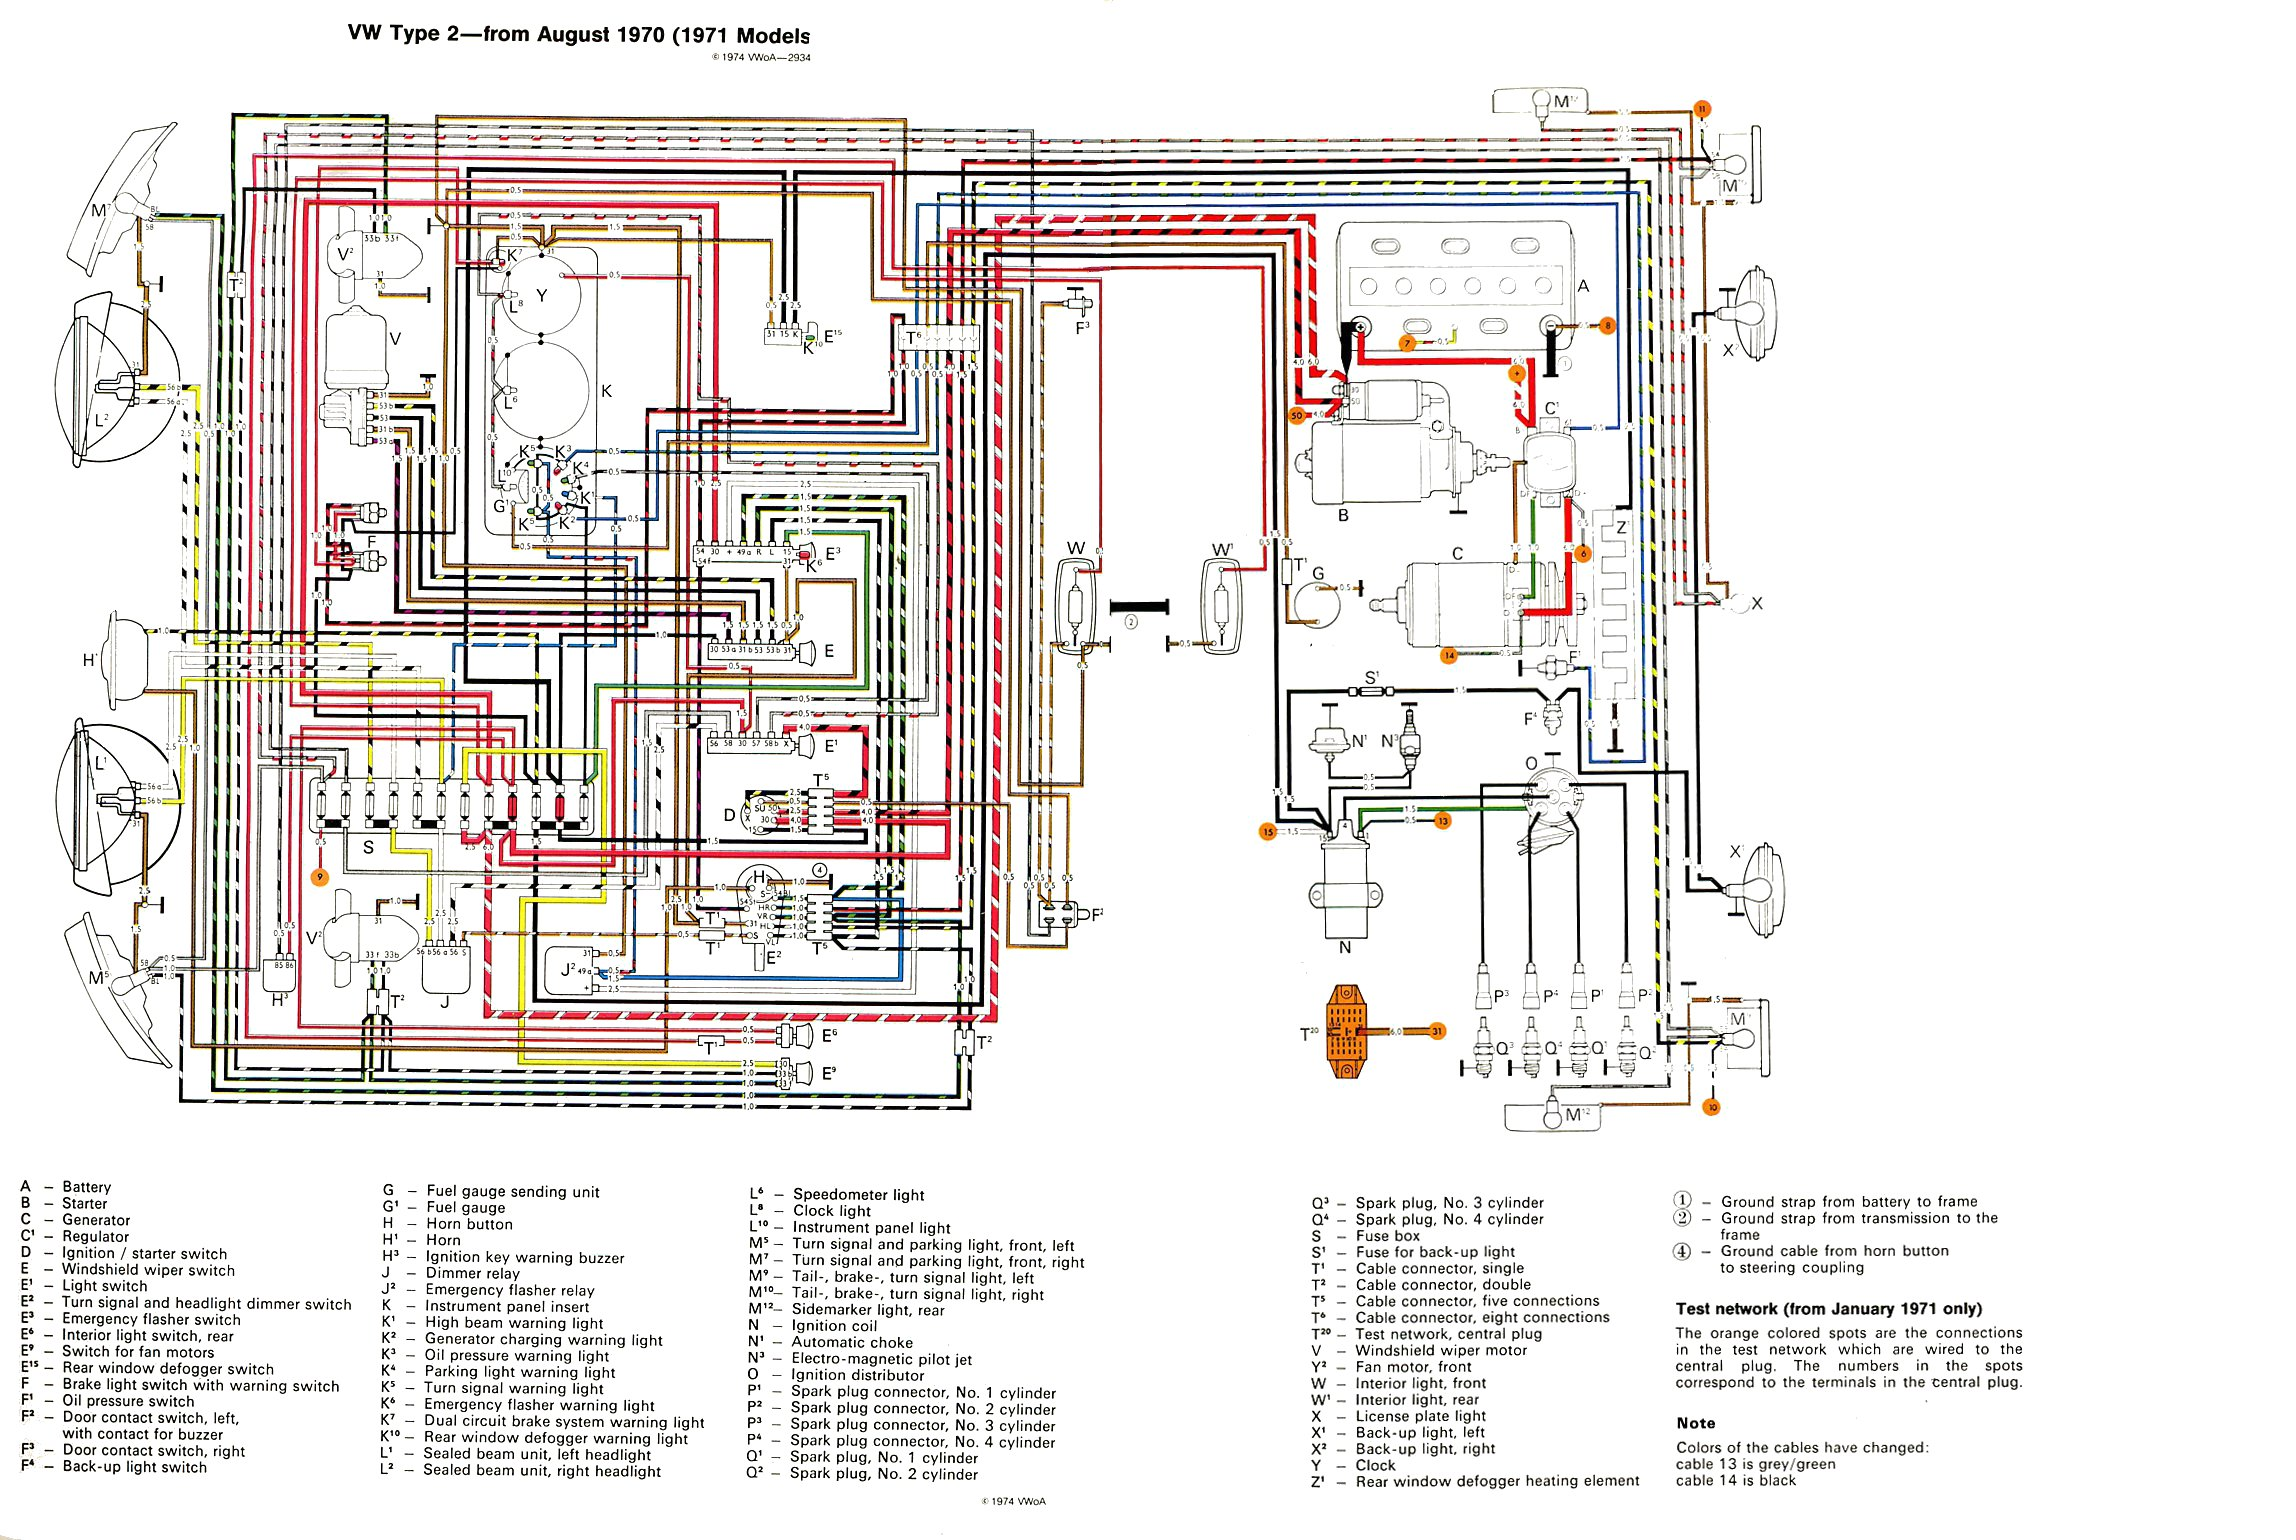 Vw T25 Horn Wiring Diagram Another Blog About How To Wire It For Switched The Should Diagrams Will Be A Thing U2022 Rh Exploreandmore Co Uk